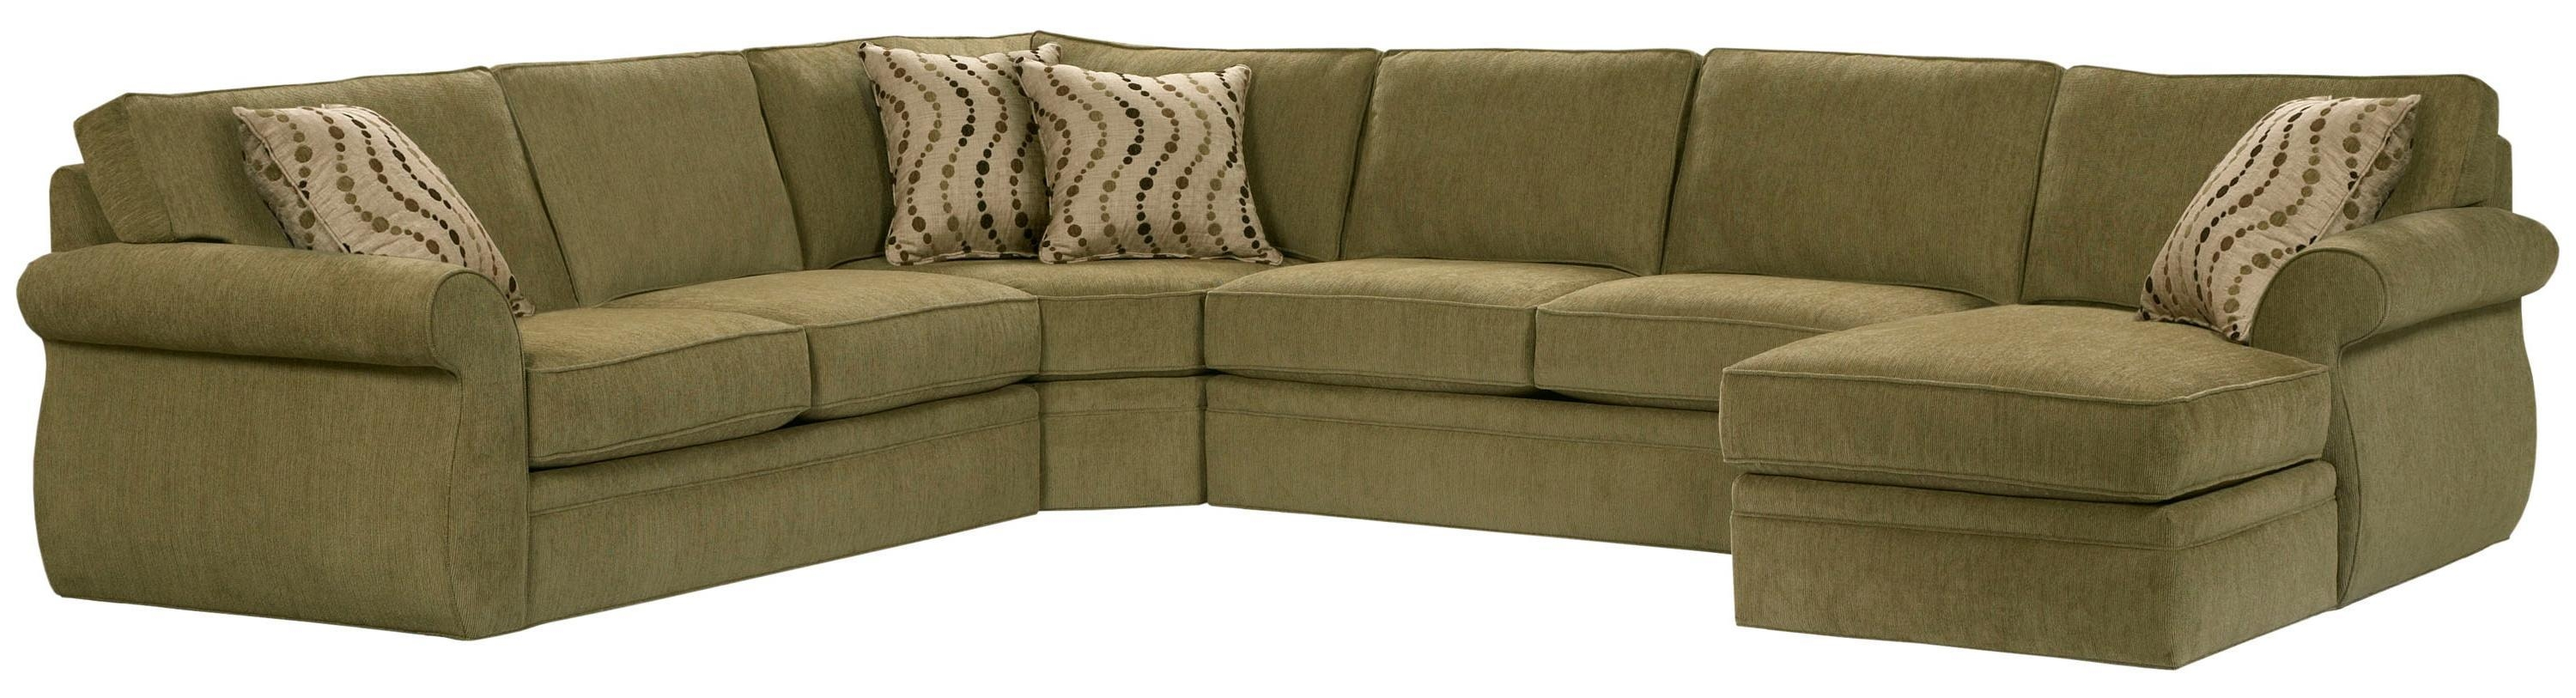 Featured Image of Broyhill Sectional Sleeper Sofas